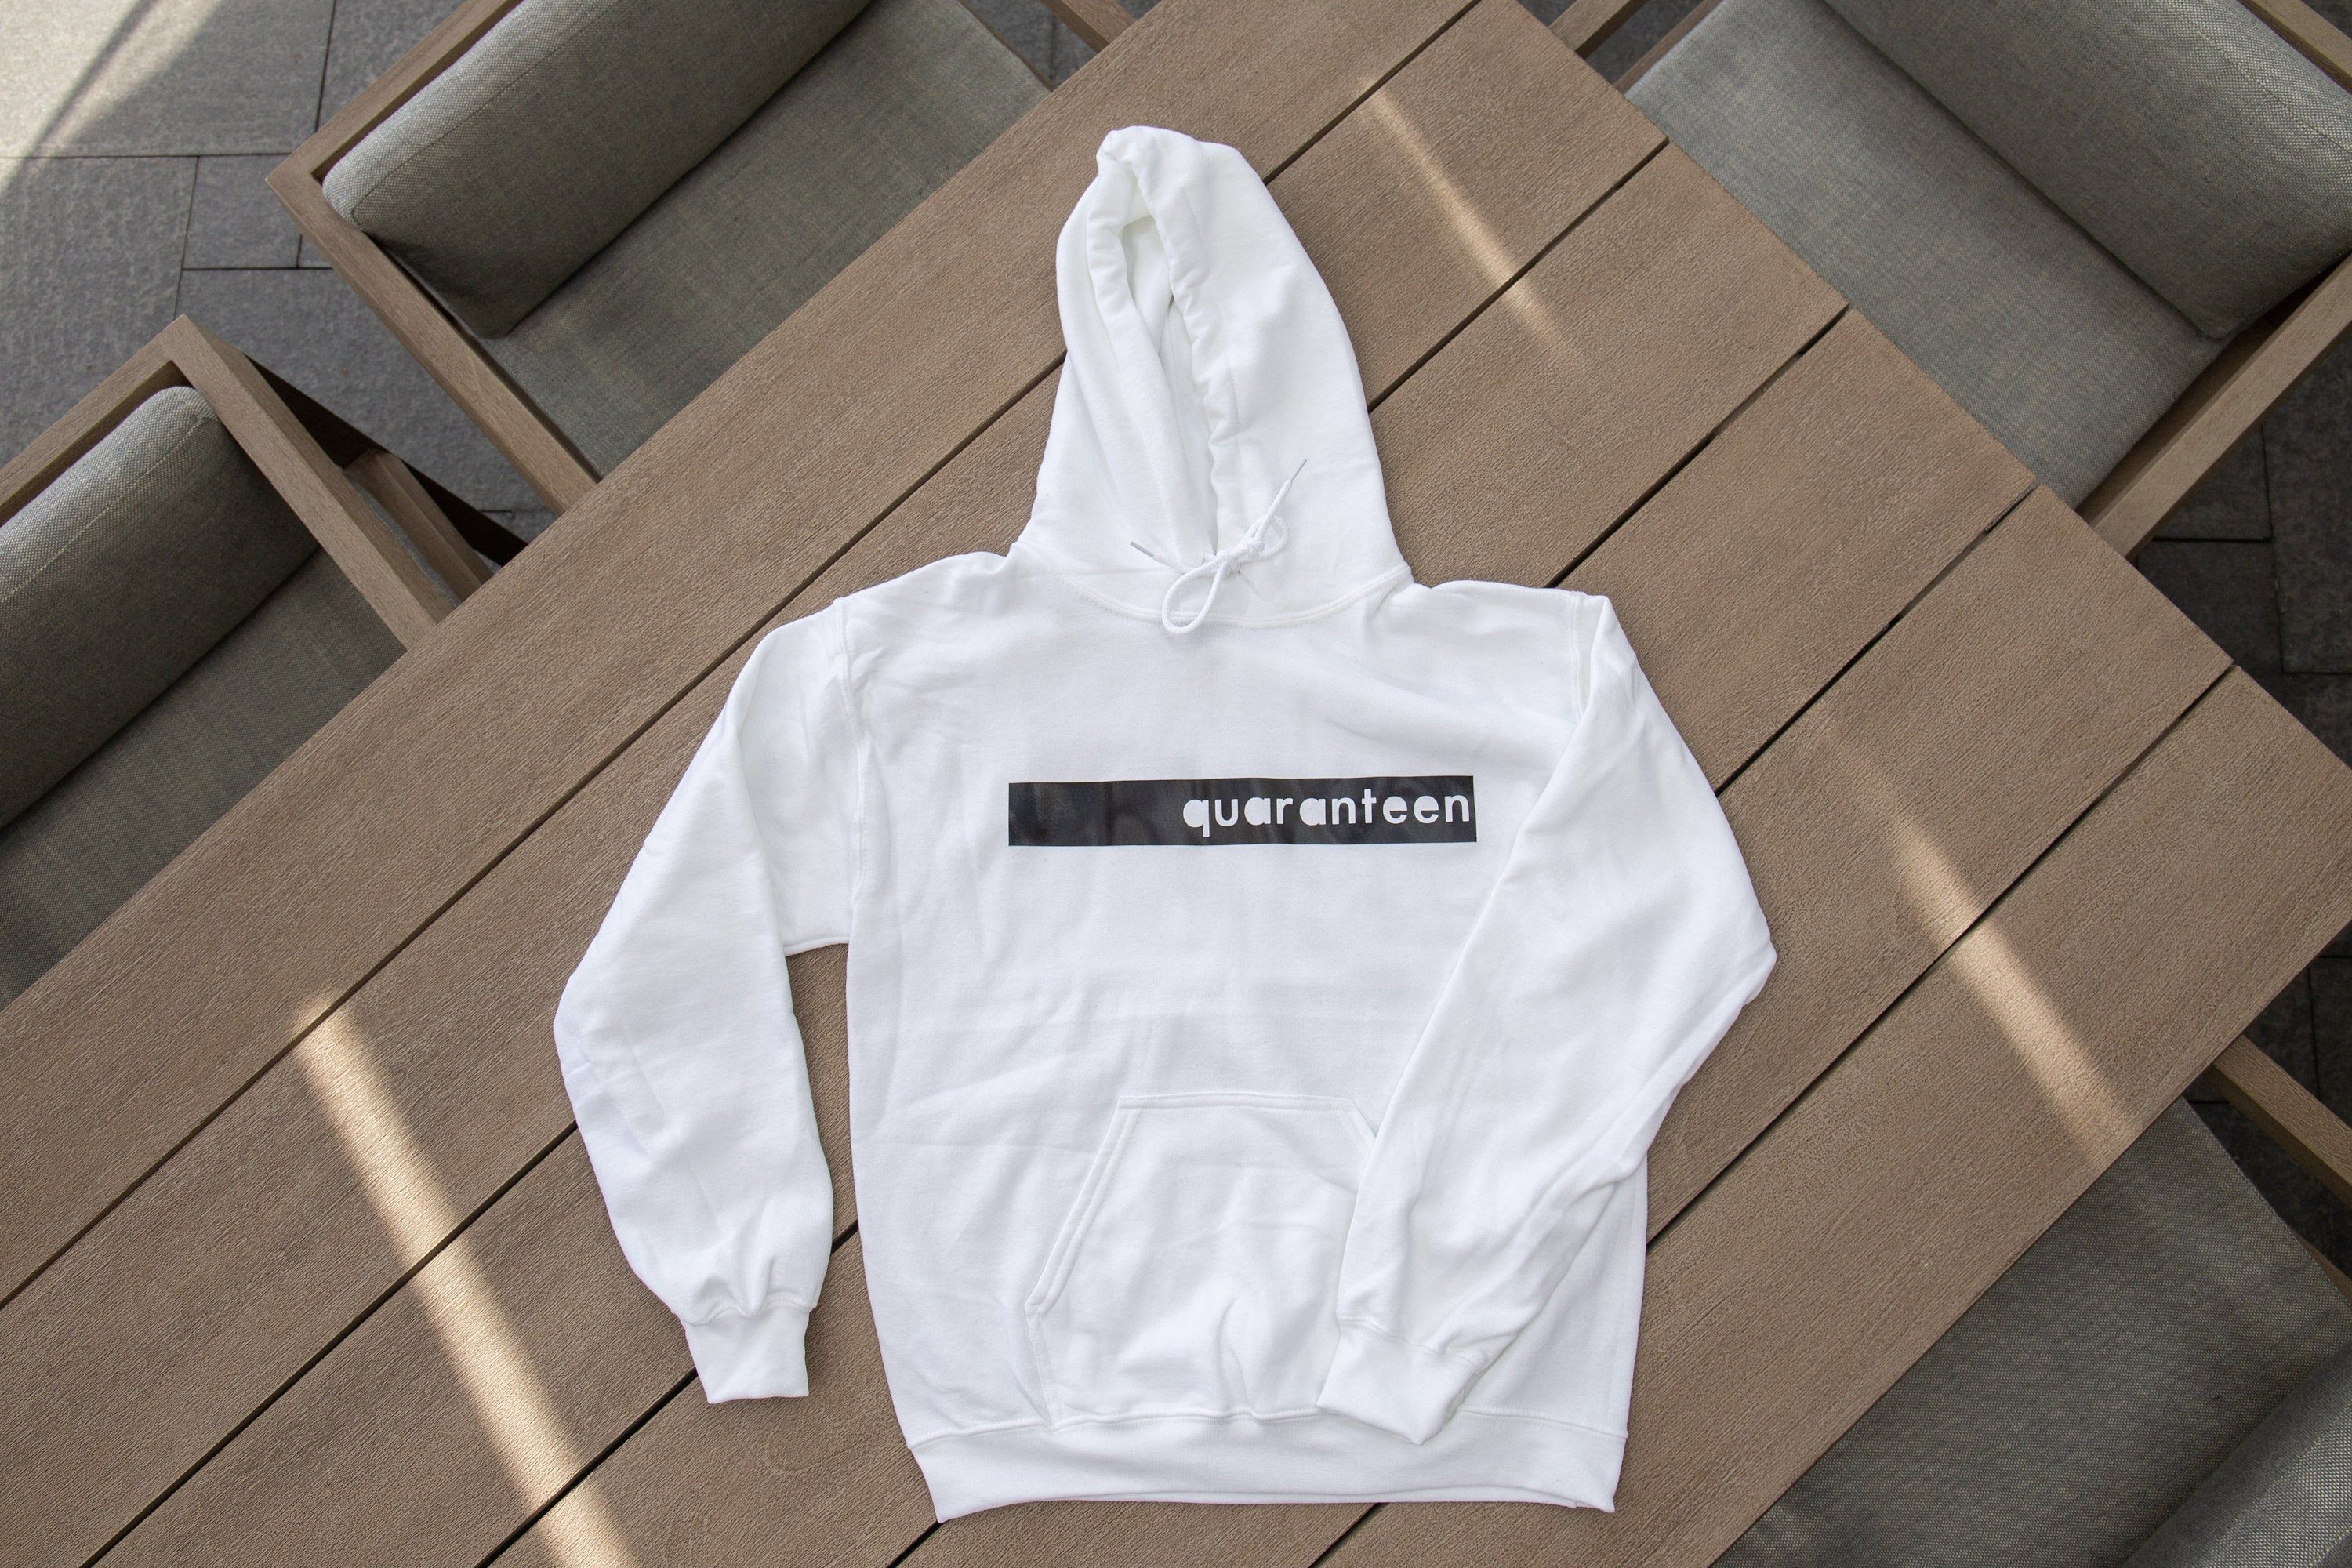 Quaranteen Inverse Printed Graphic Minimalist Hoodie 10 Proceeds Donated To The World Health Organization In 2020 Graphic Minimalist Graphic Prints Prints